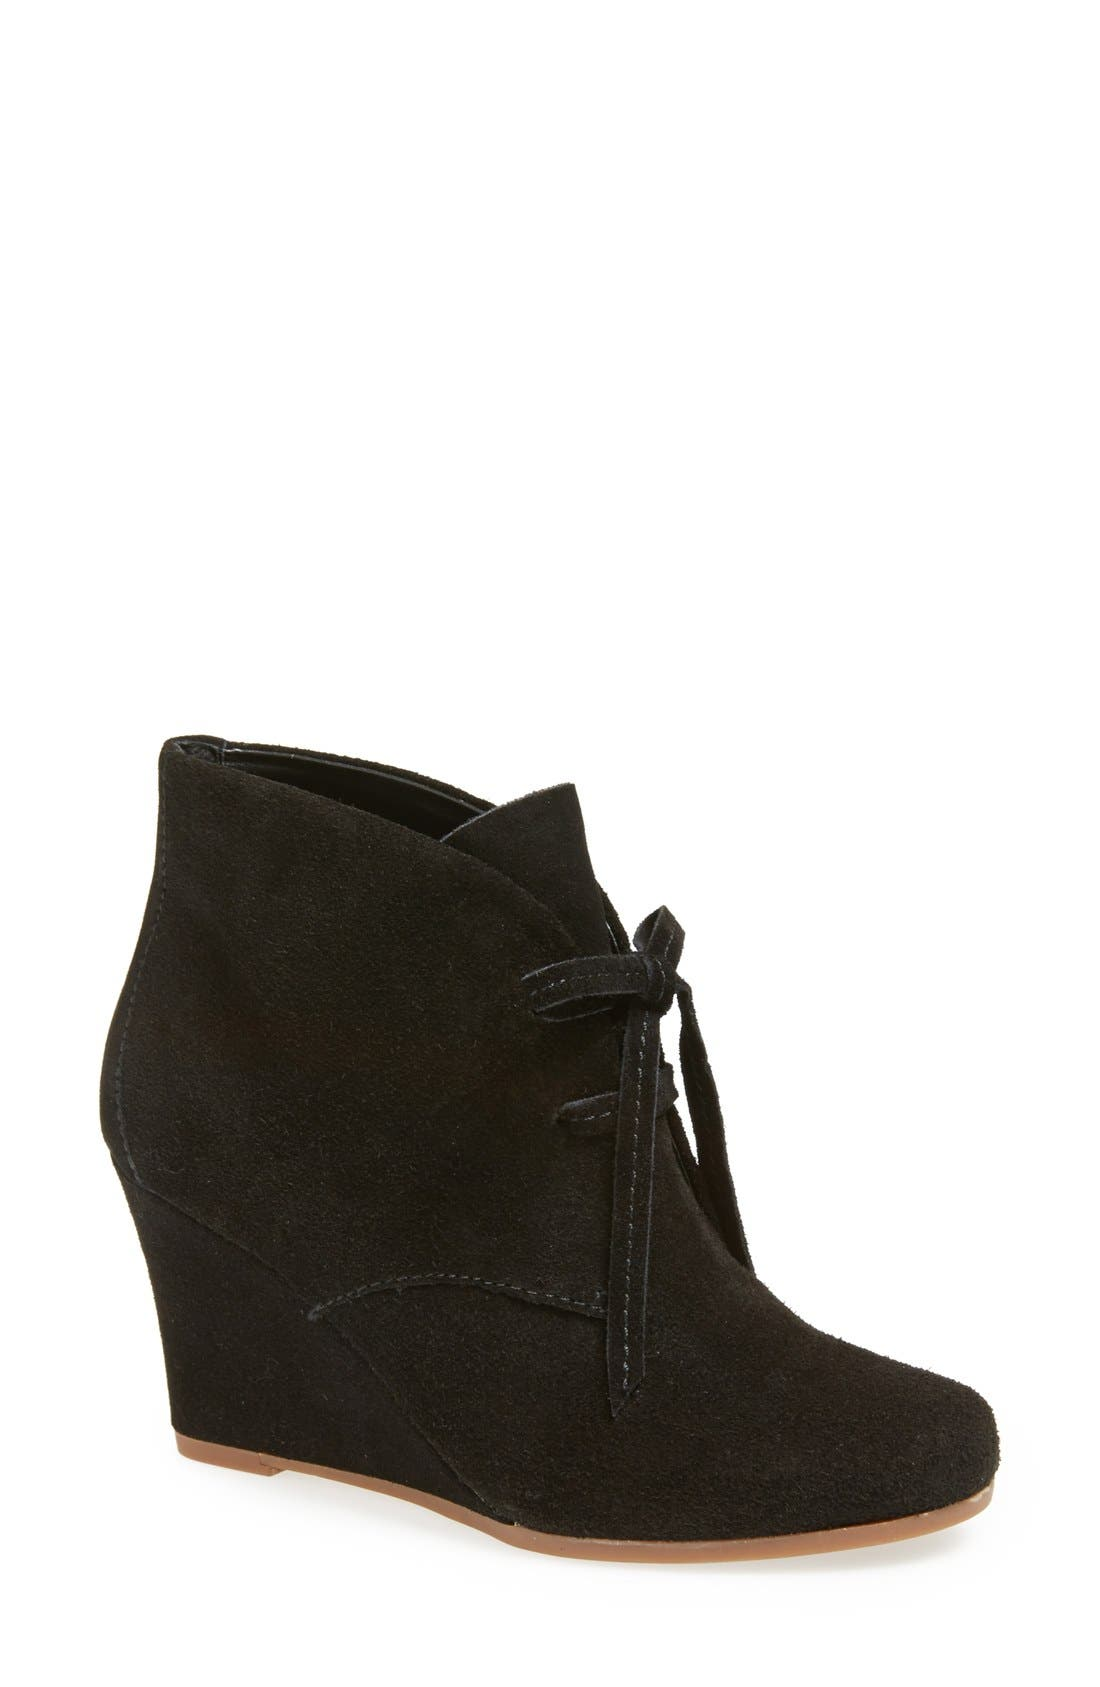 Alternate Image 1 Selected - DV by Dolce Vita 'Pellie' Bootie (Women)